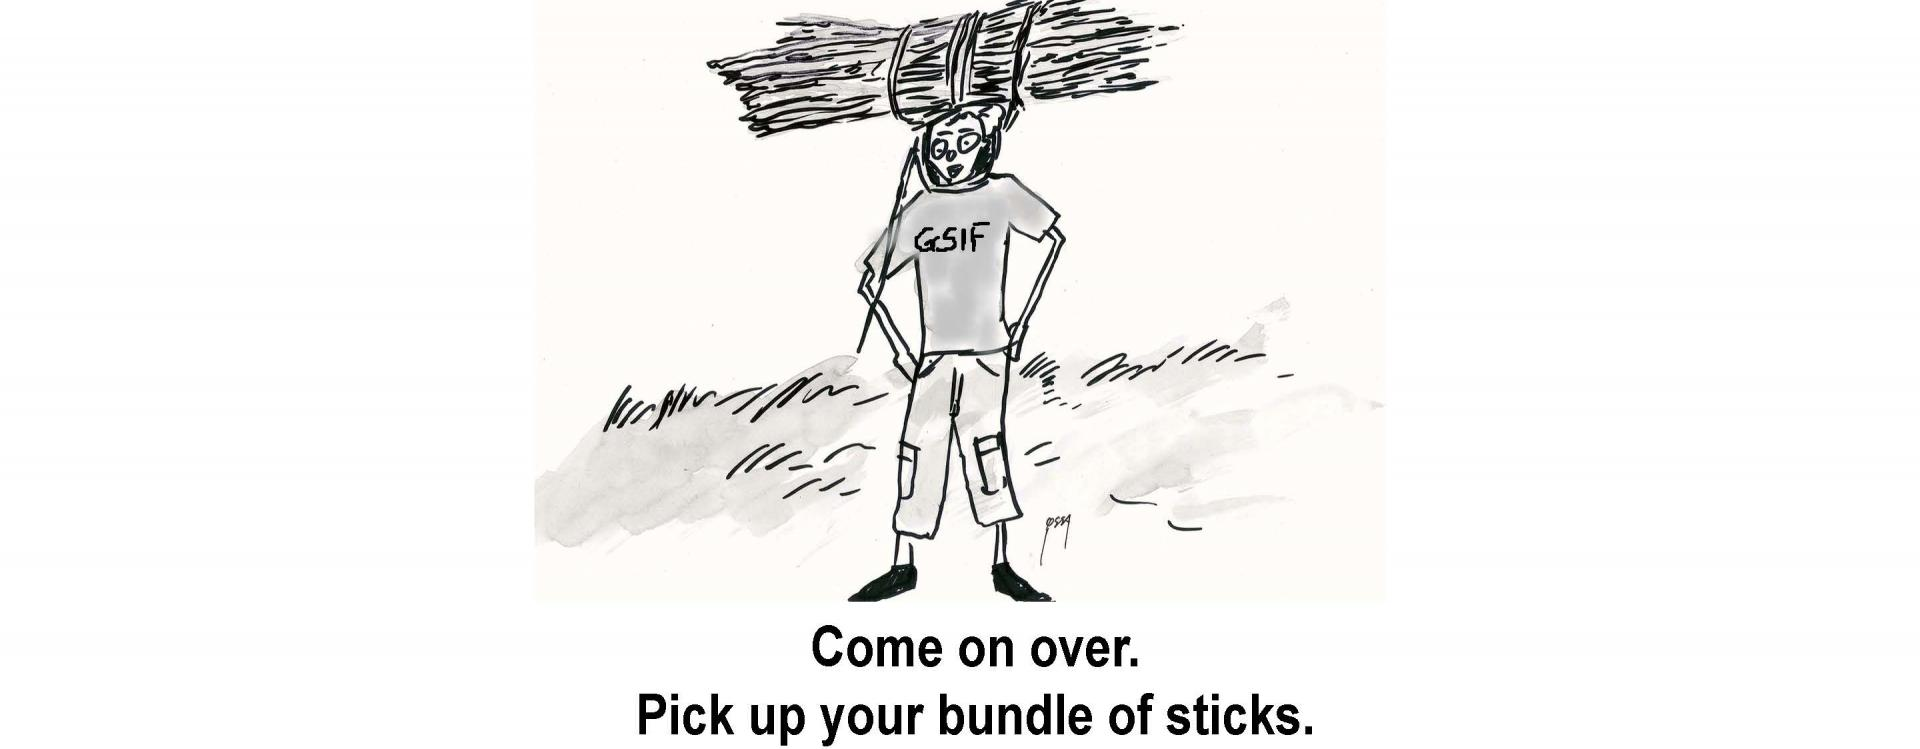 Come on over. Pick up your bundle of sticks.